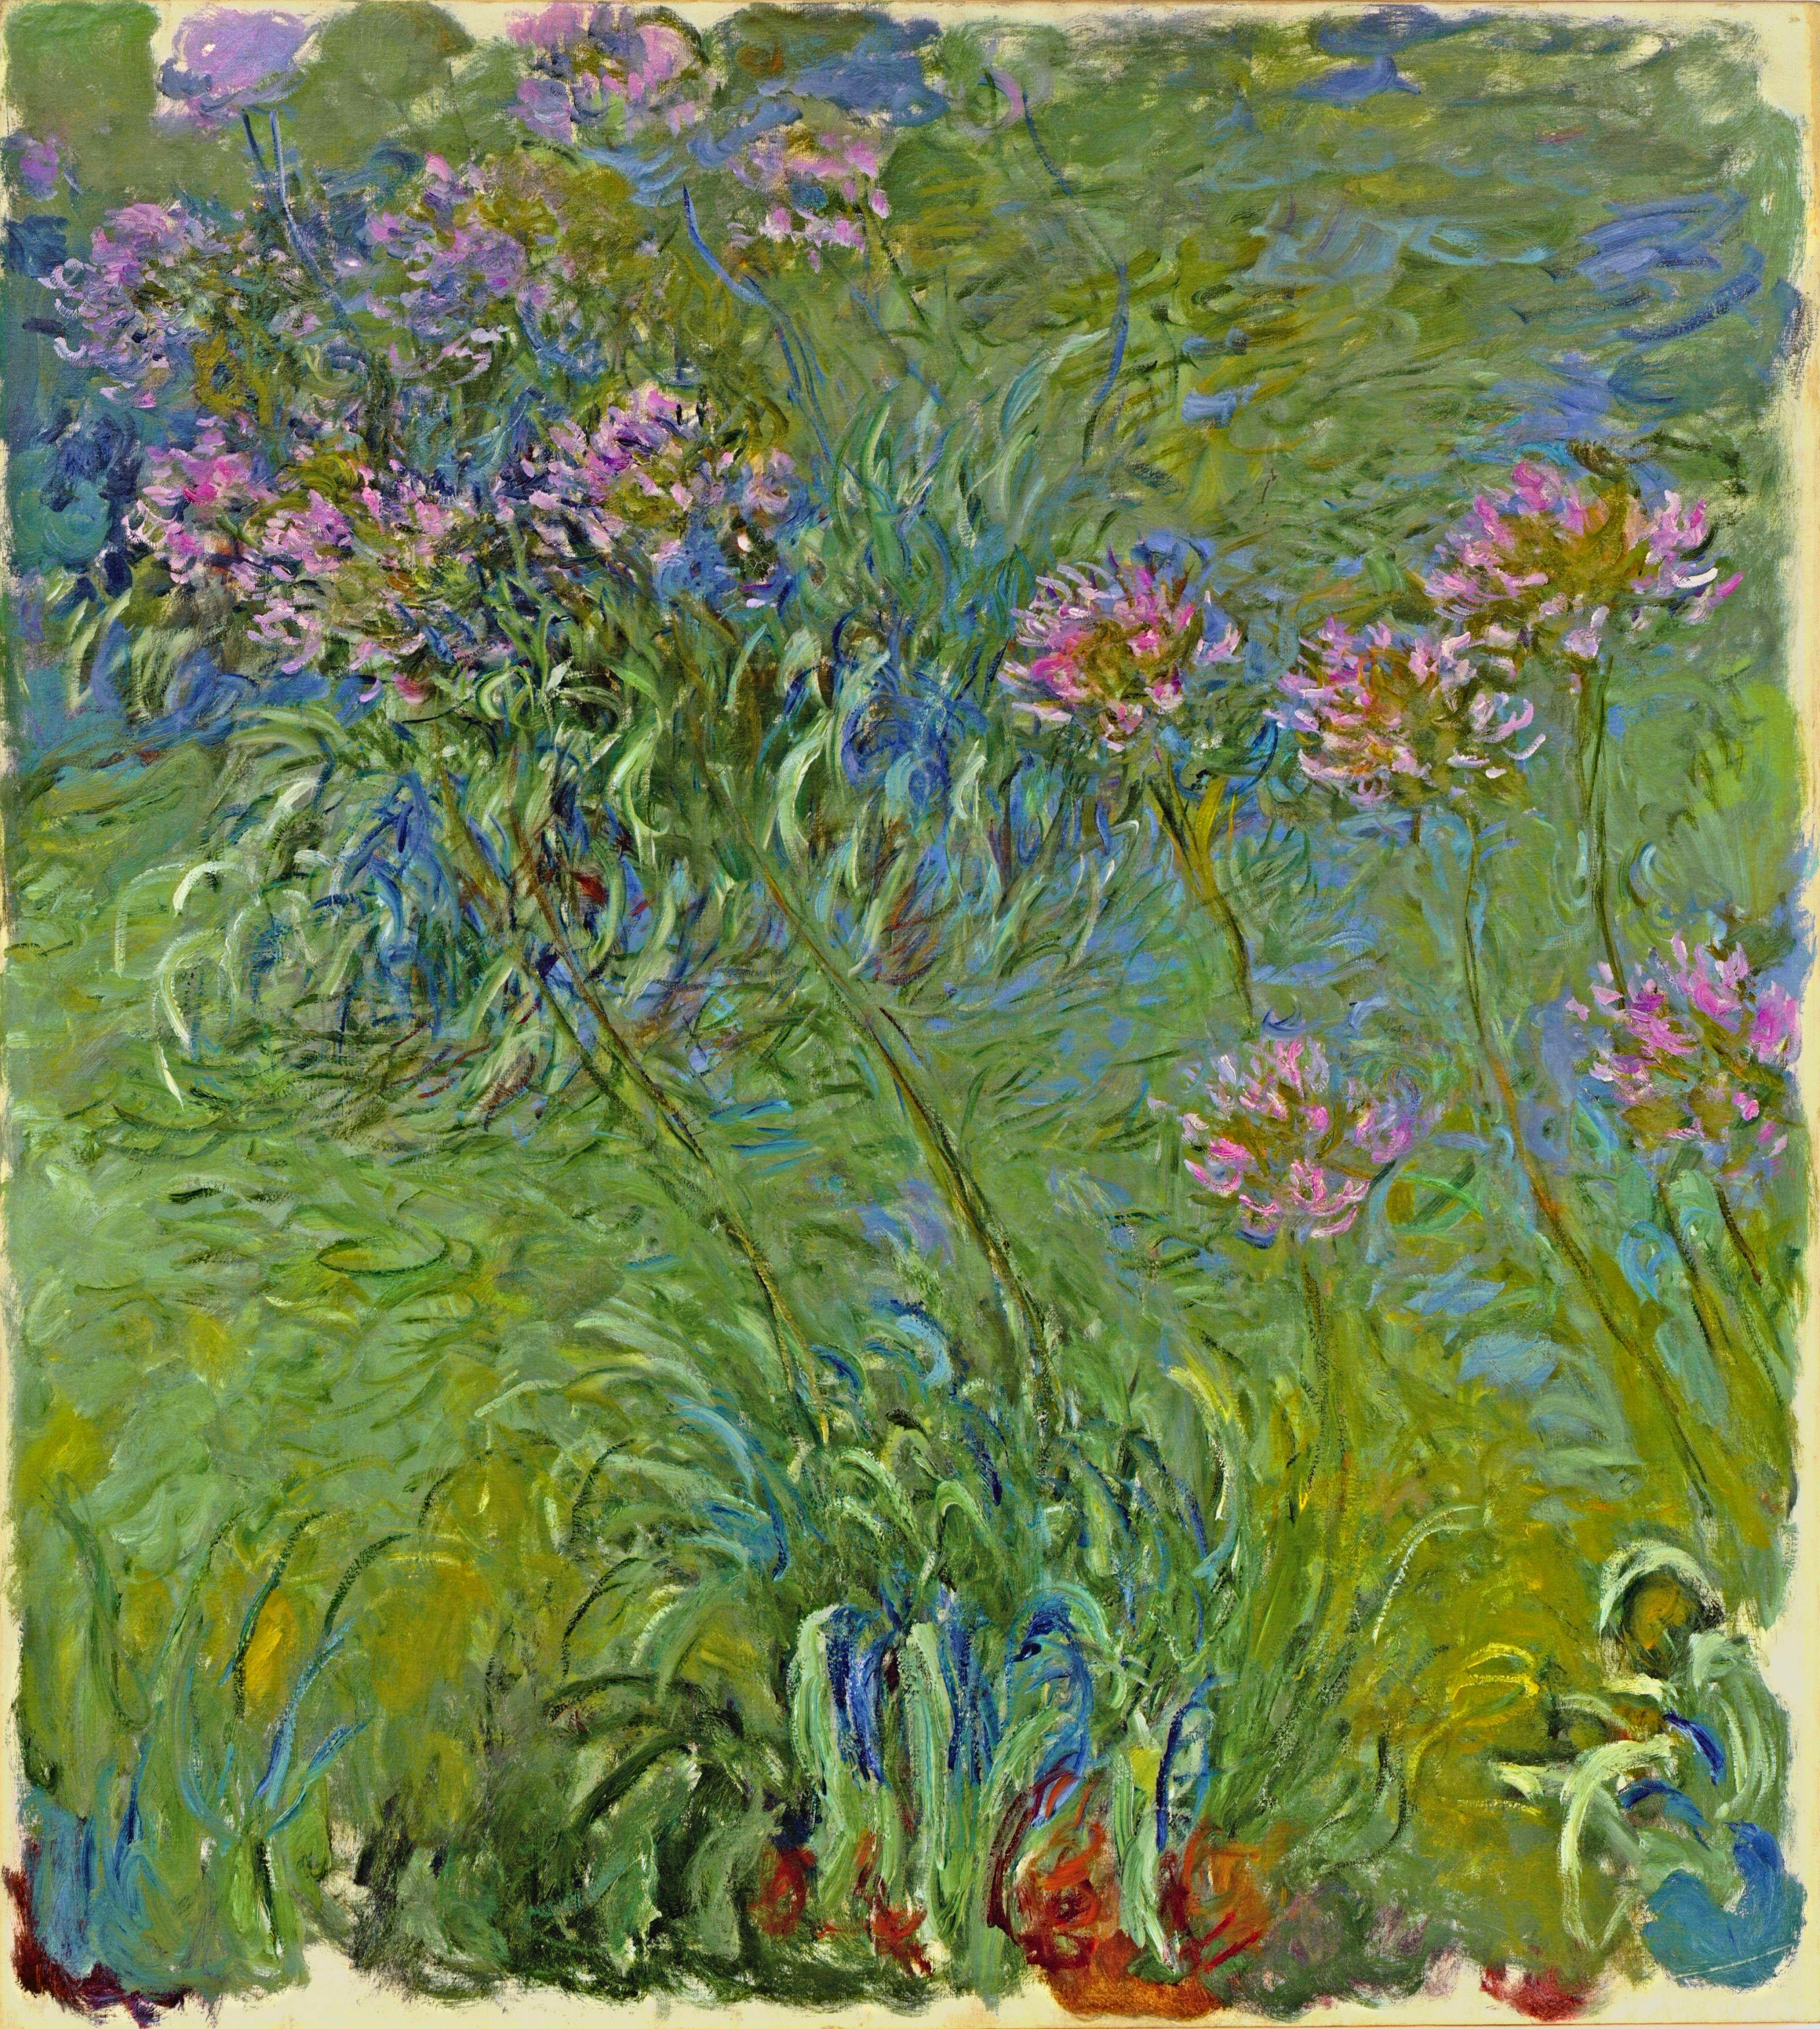 monet vase of flowers of monet flower paintings throughout 2cb6216cb108d9e52f966a0ad1db0590